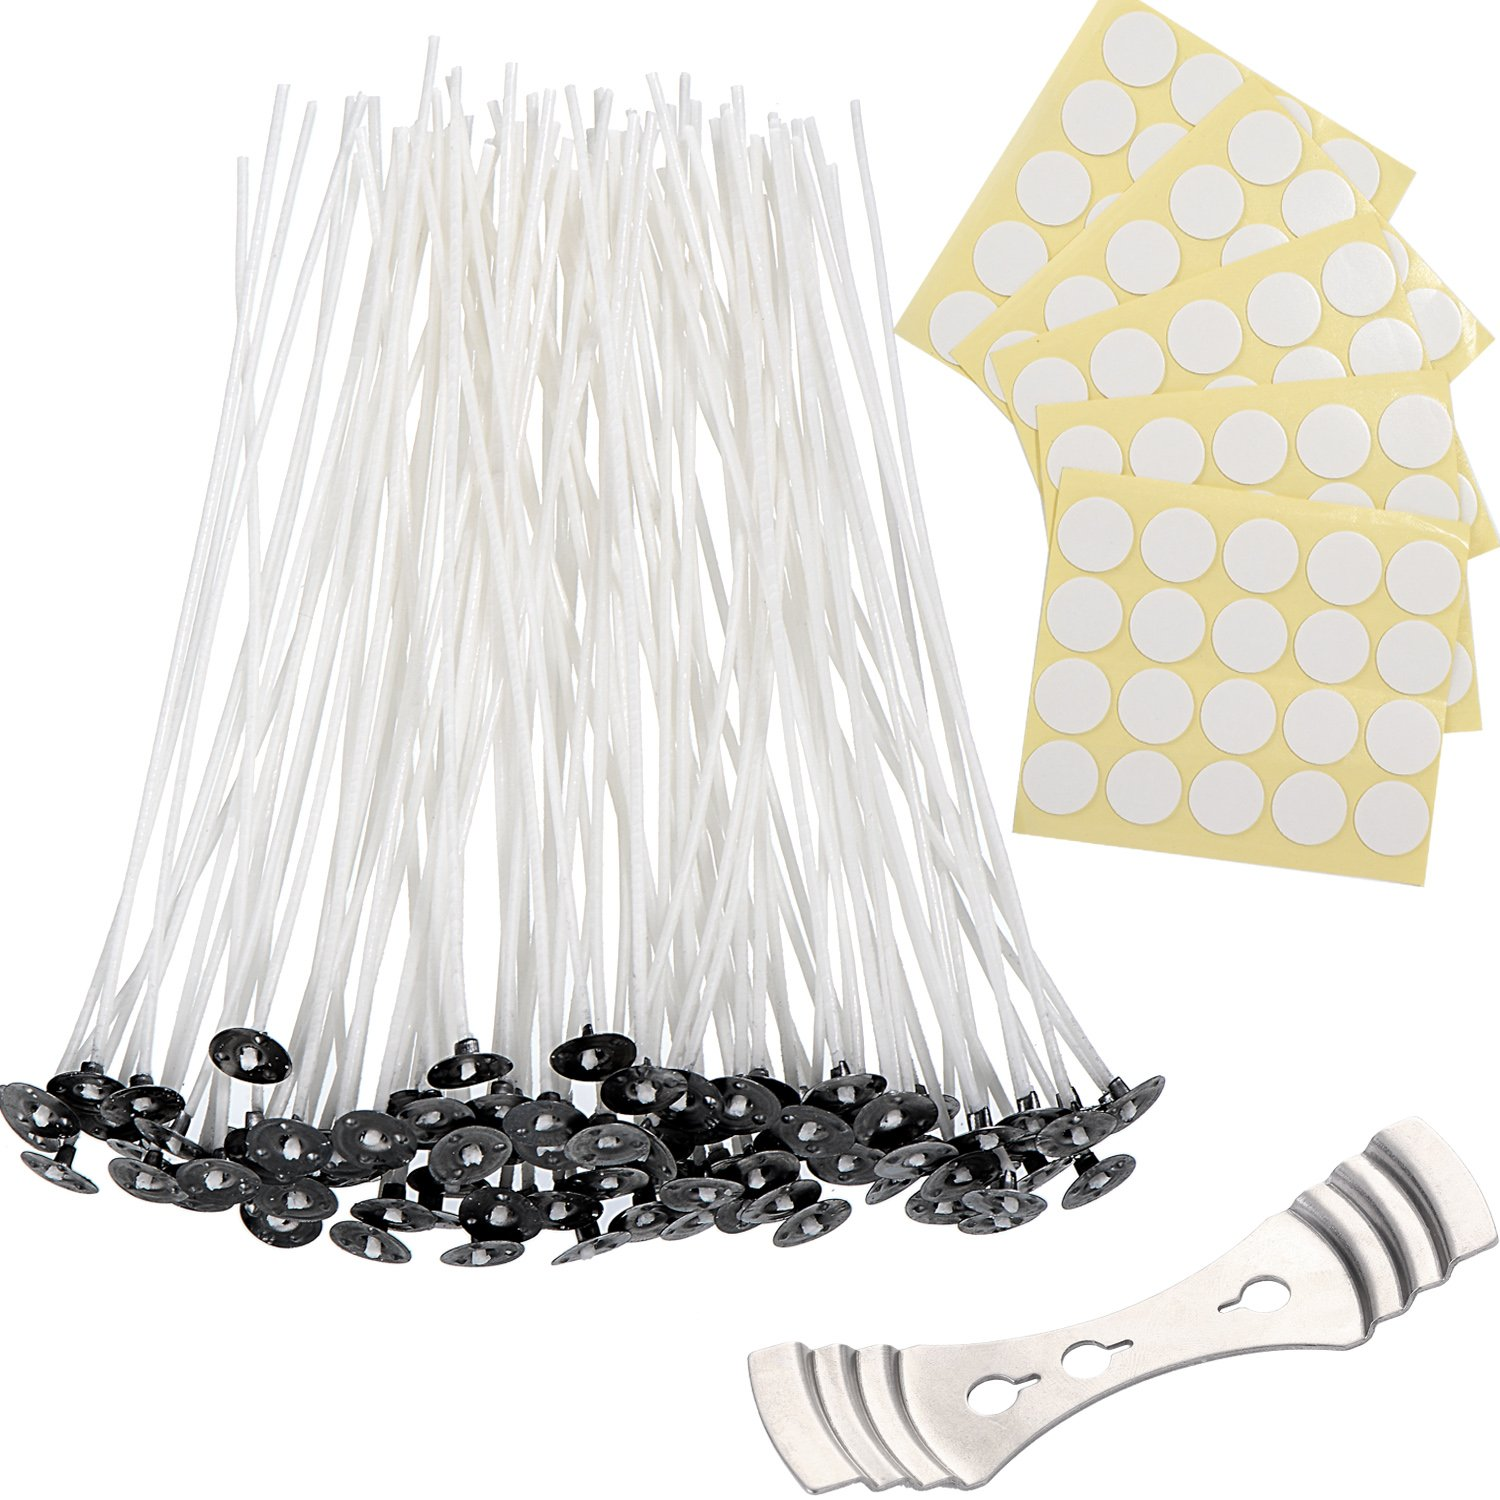 Candle Making Kit 100 Pieces Prewaxed Candle Wicks with 1 Piece Stainless Wick Holder Sustainer and 100 Double-Sided Dots Wick Stickers (4.7 Inch) Shappy